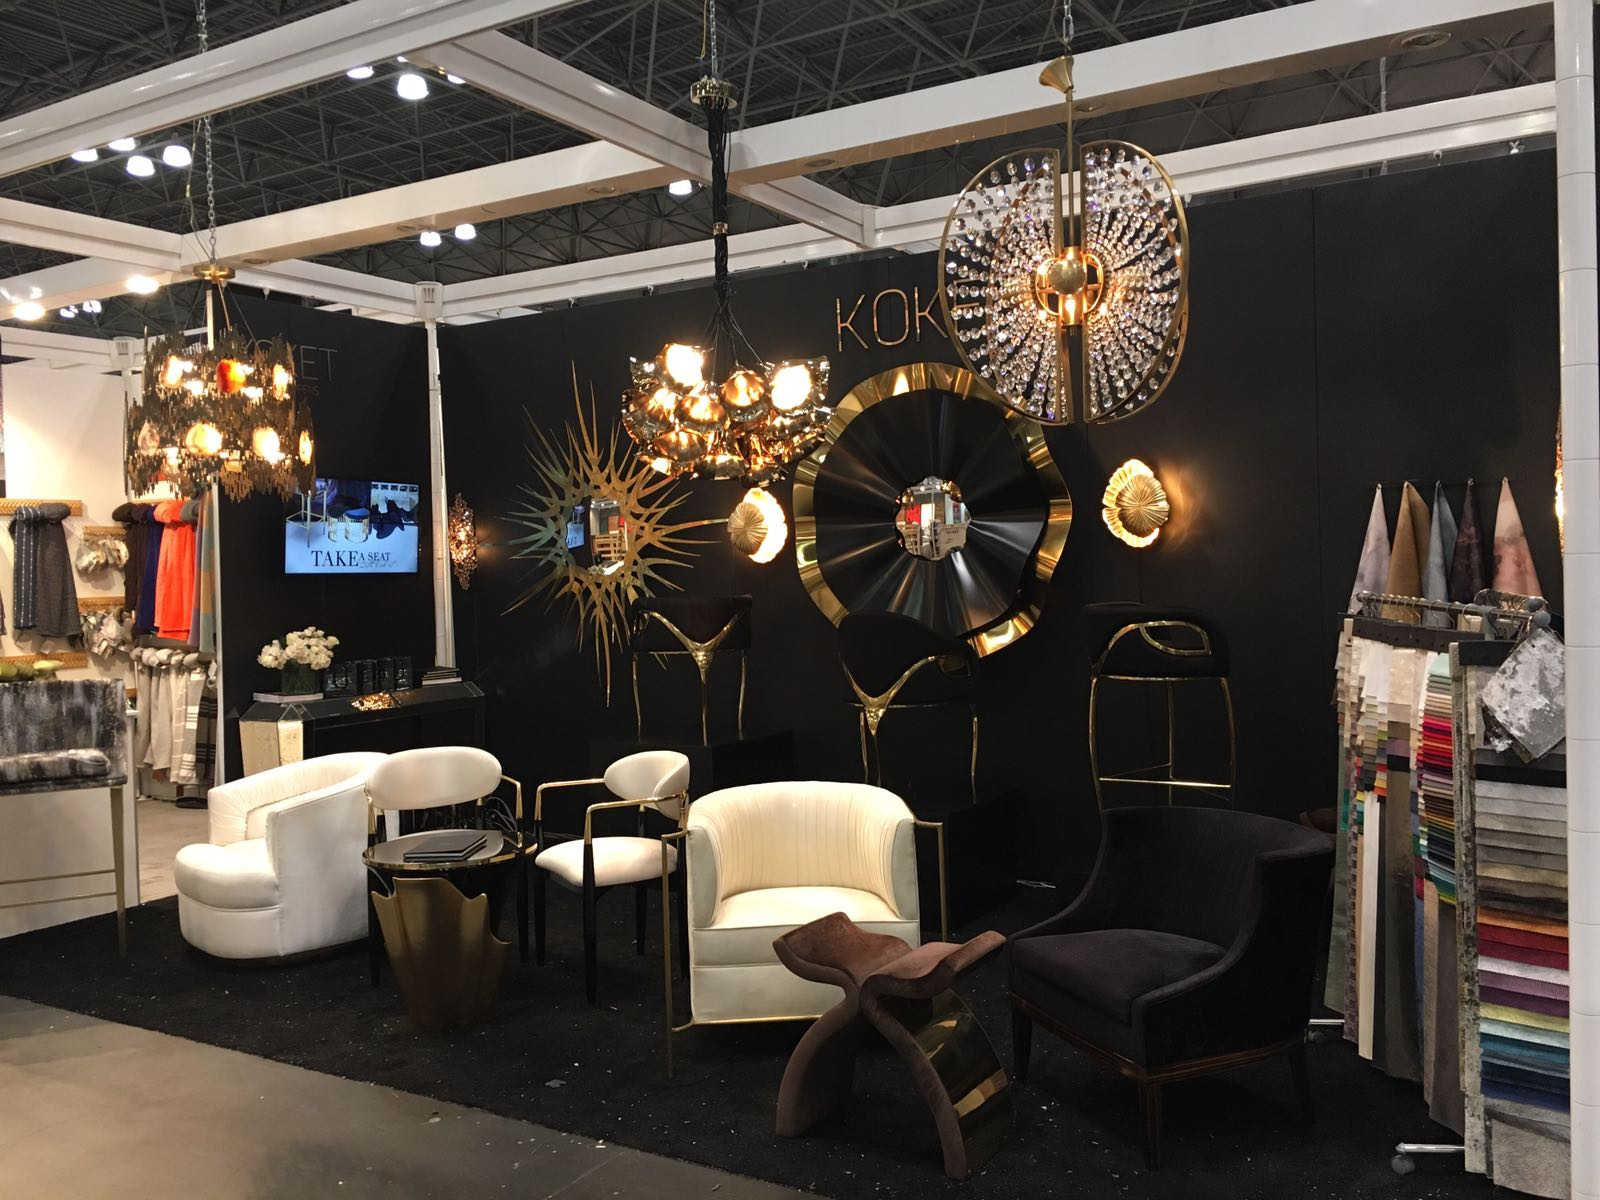 Come Find What Boutique Design New York Has To Offer You This Year 12 Boutique Design New York Come Find What Boutique Design New York Has To Offer You This Year Come Find What Boutique Design New York Has To Offer You This Year 12